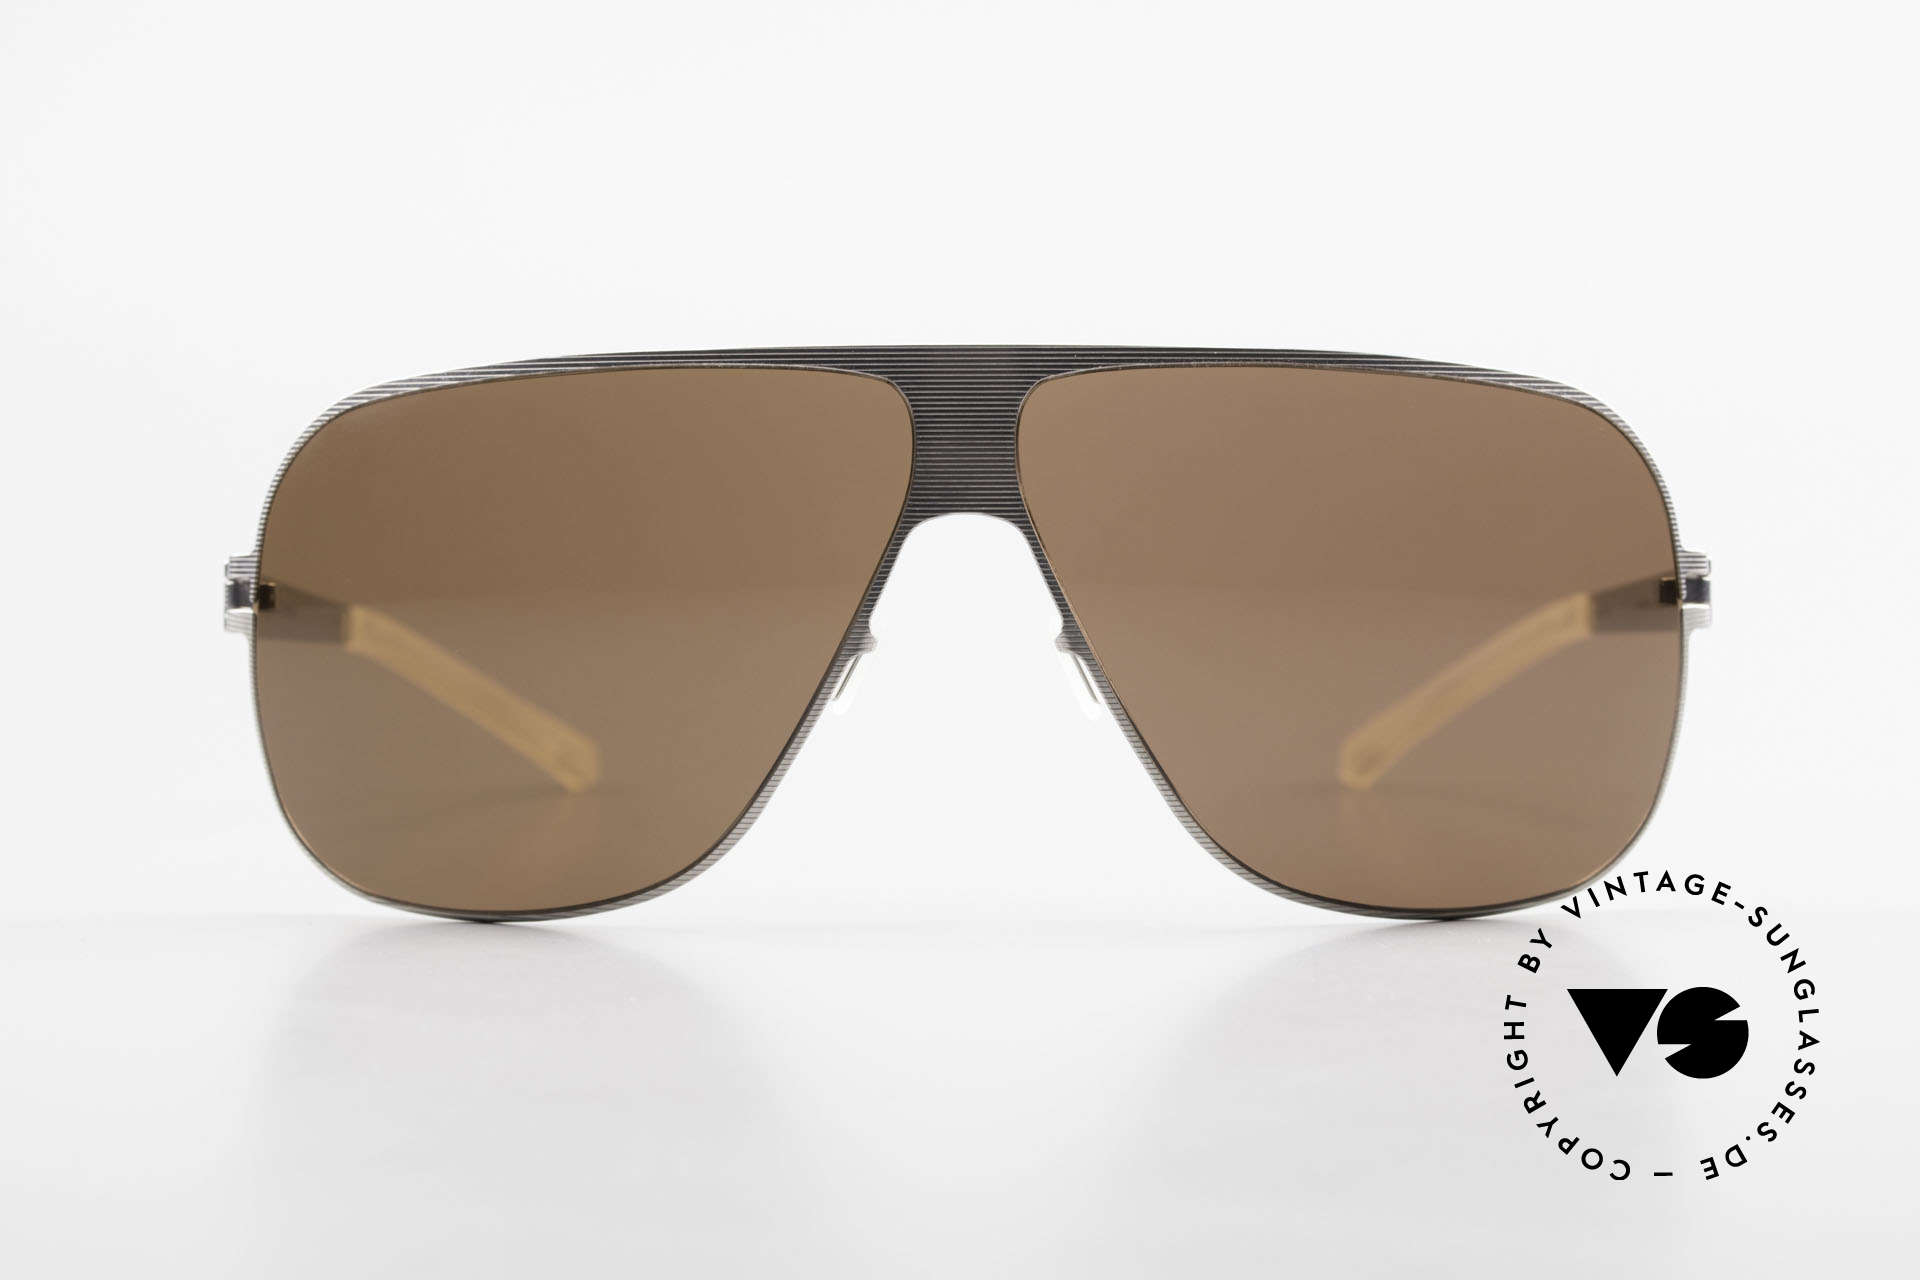 Mykita Hector Aviator Men's Sunglasses 2009's, MYKITA: the youngest brand in our vintage collection, Made for Men